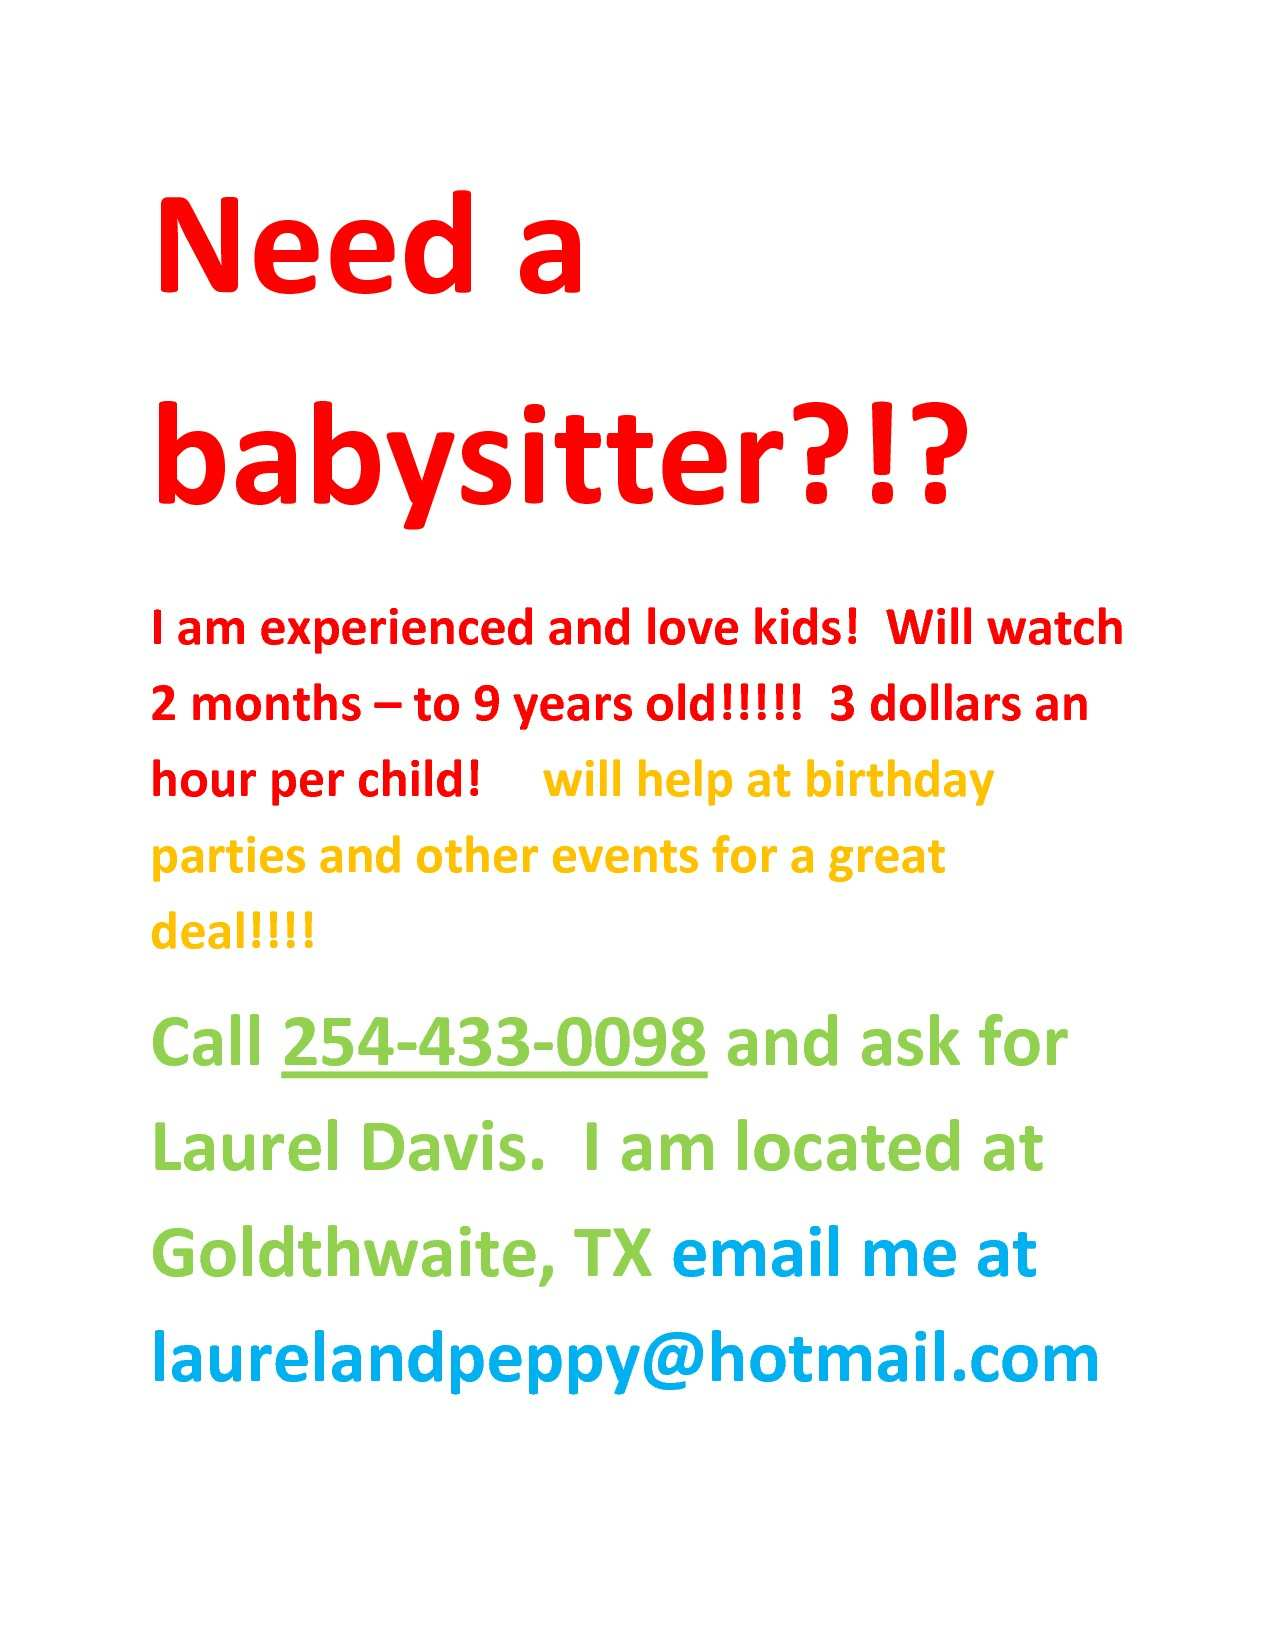 19 Blank Babysitting Flyer Templates Download by Babysitting Flyer Templates